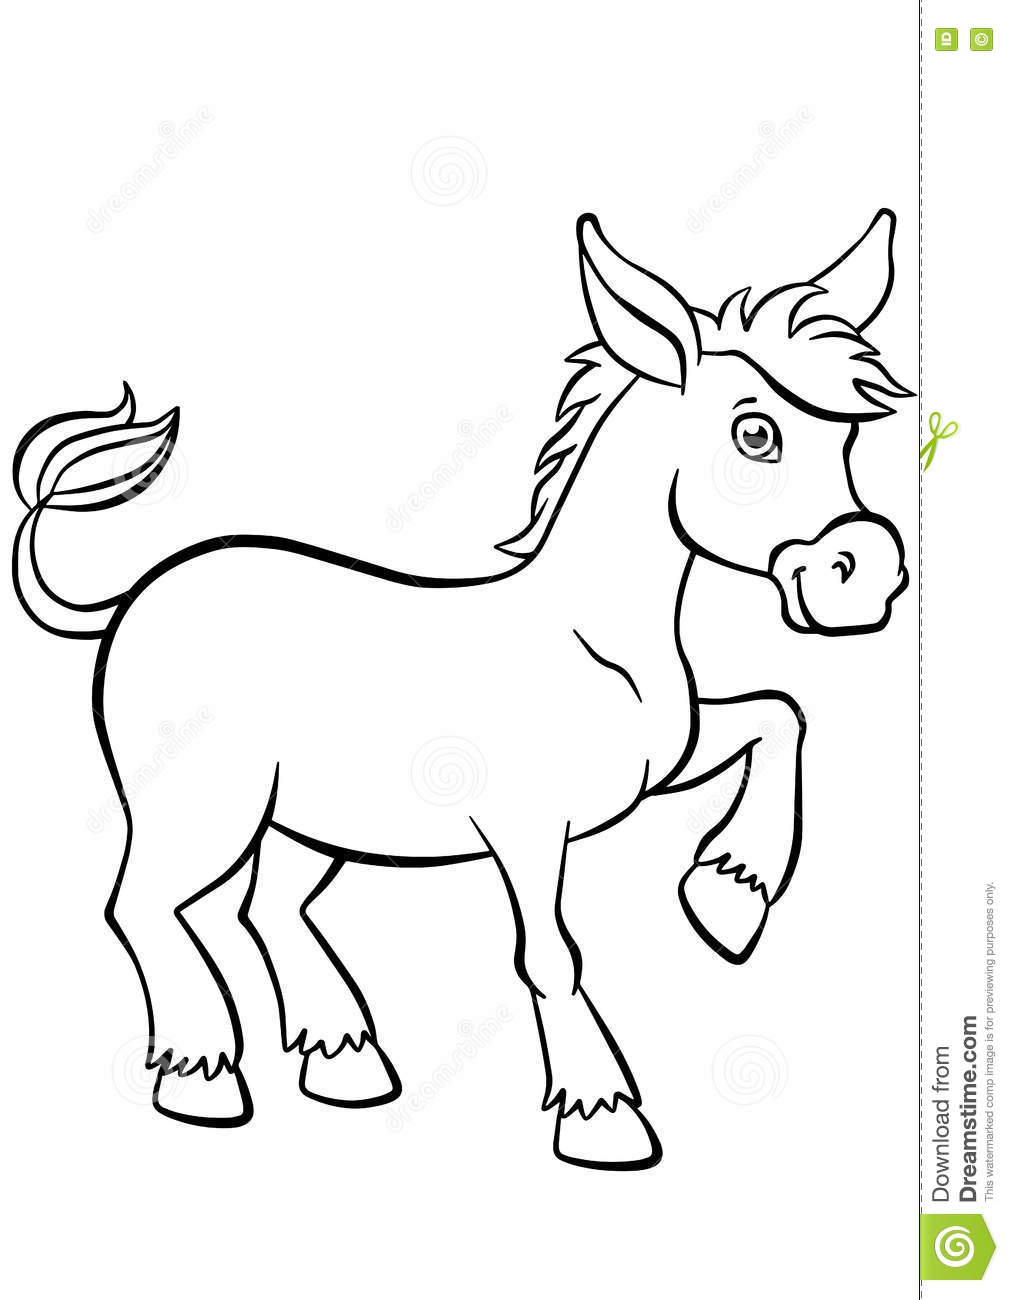 Coloring pages. Animals. Little cute donkey.